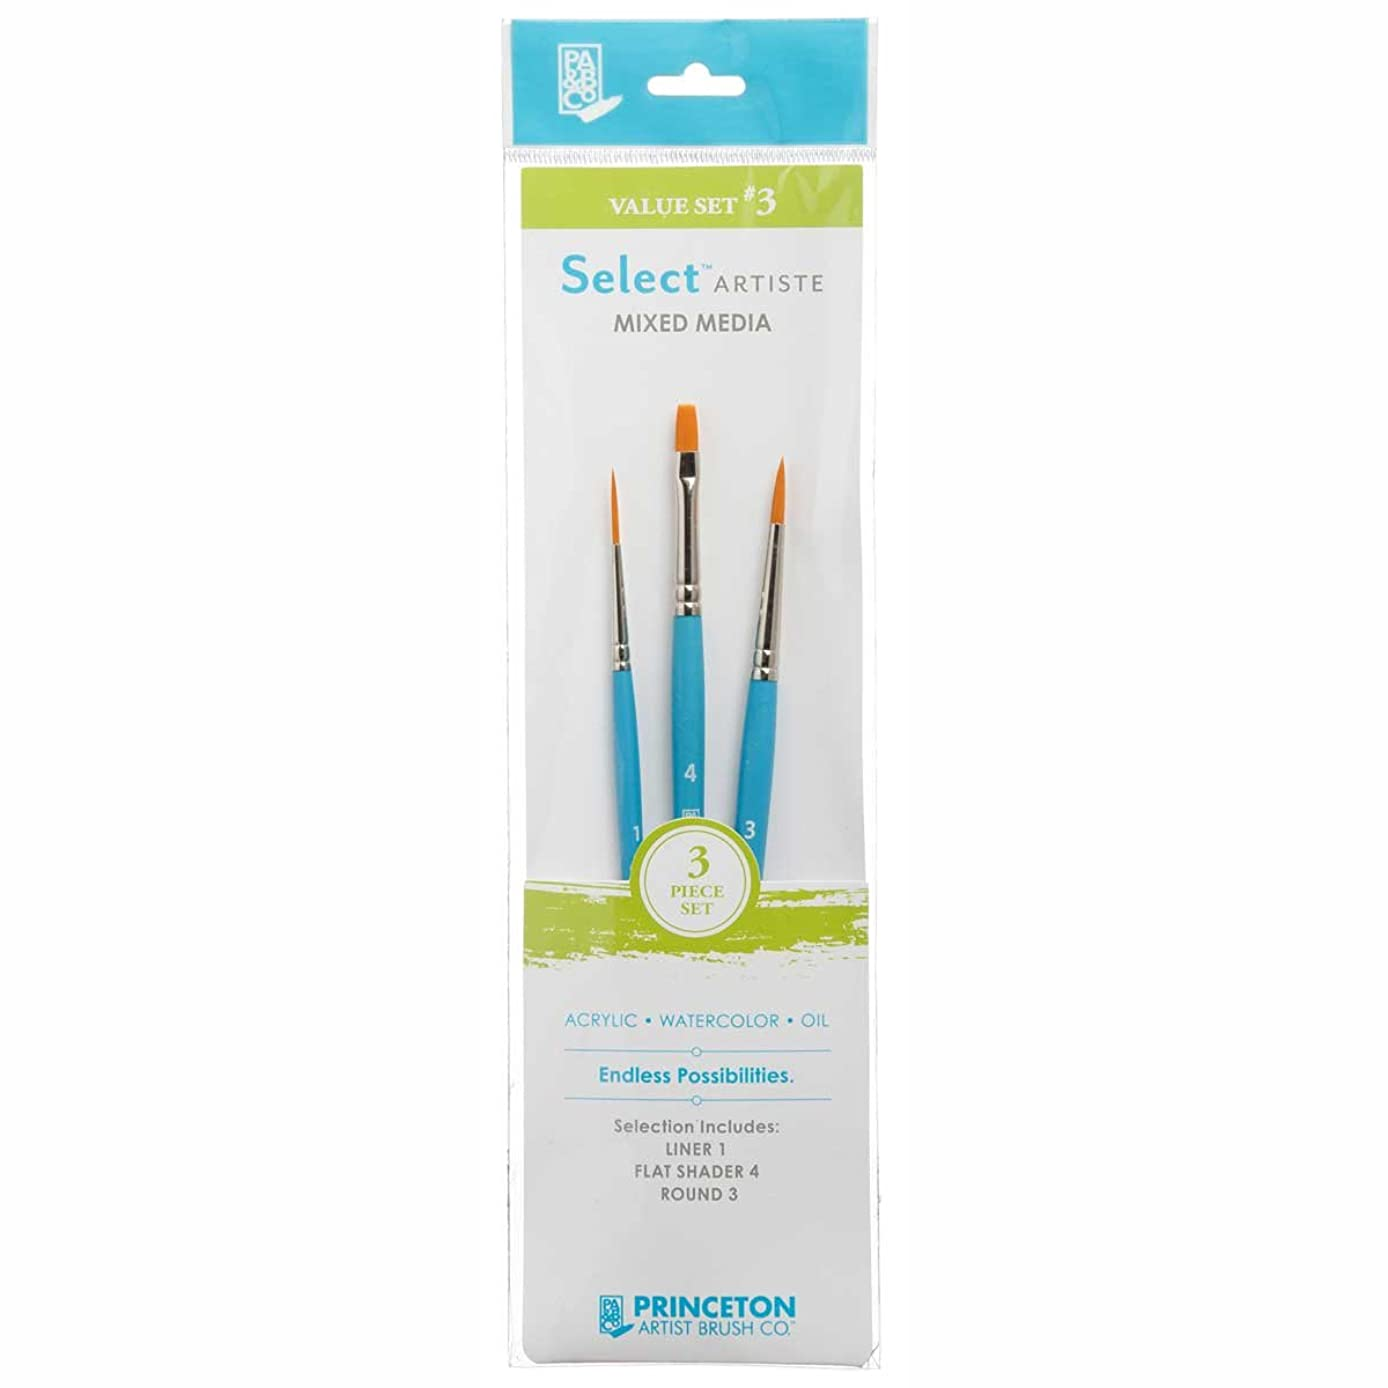 Princeton Select Artiste, Mixed-Media Brushes for Acrylic, Oil, Watercolor Series 3750, 3 Piece Value Set 103